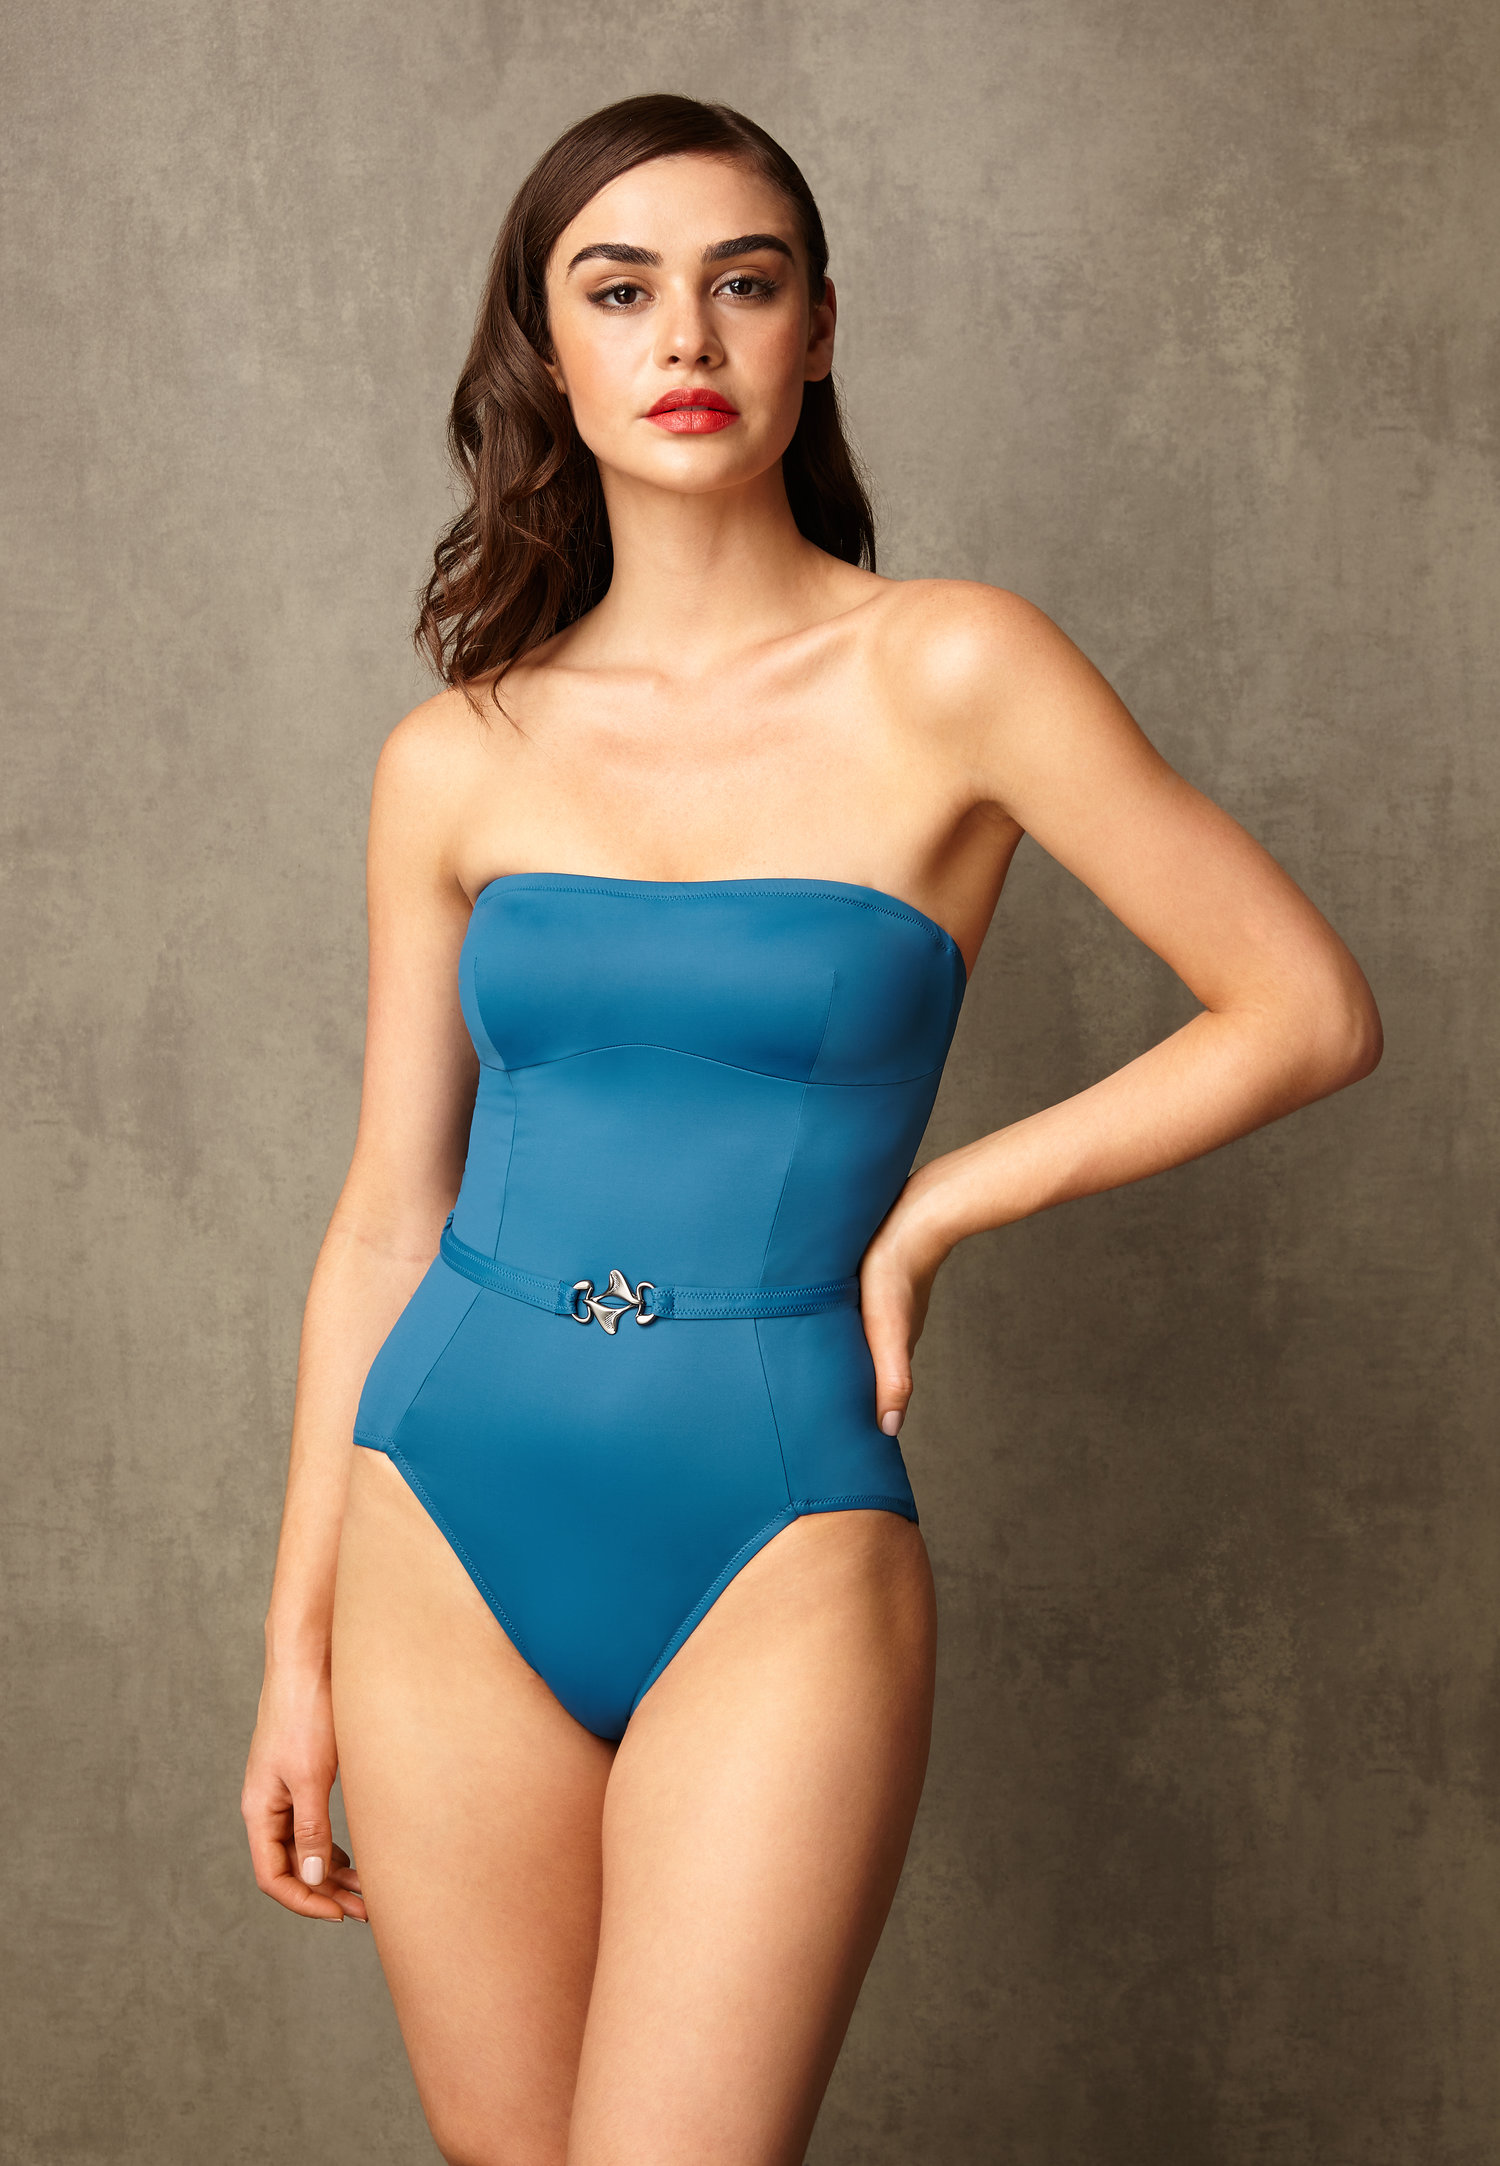 FOXTROT LAGOON SWIMSUIT by Ava Verdú on curated-crowd.com